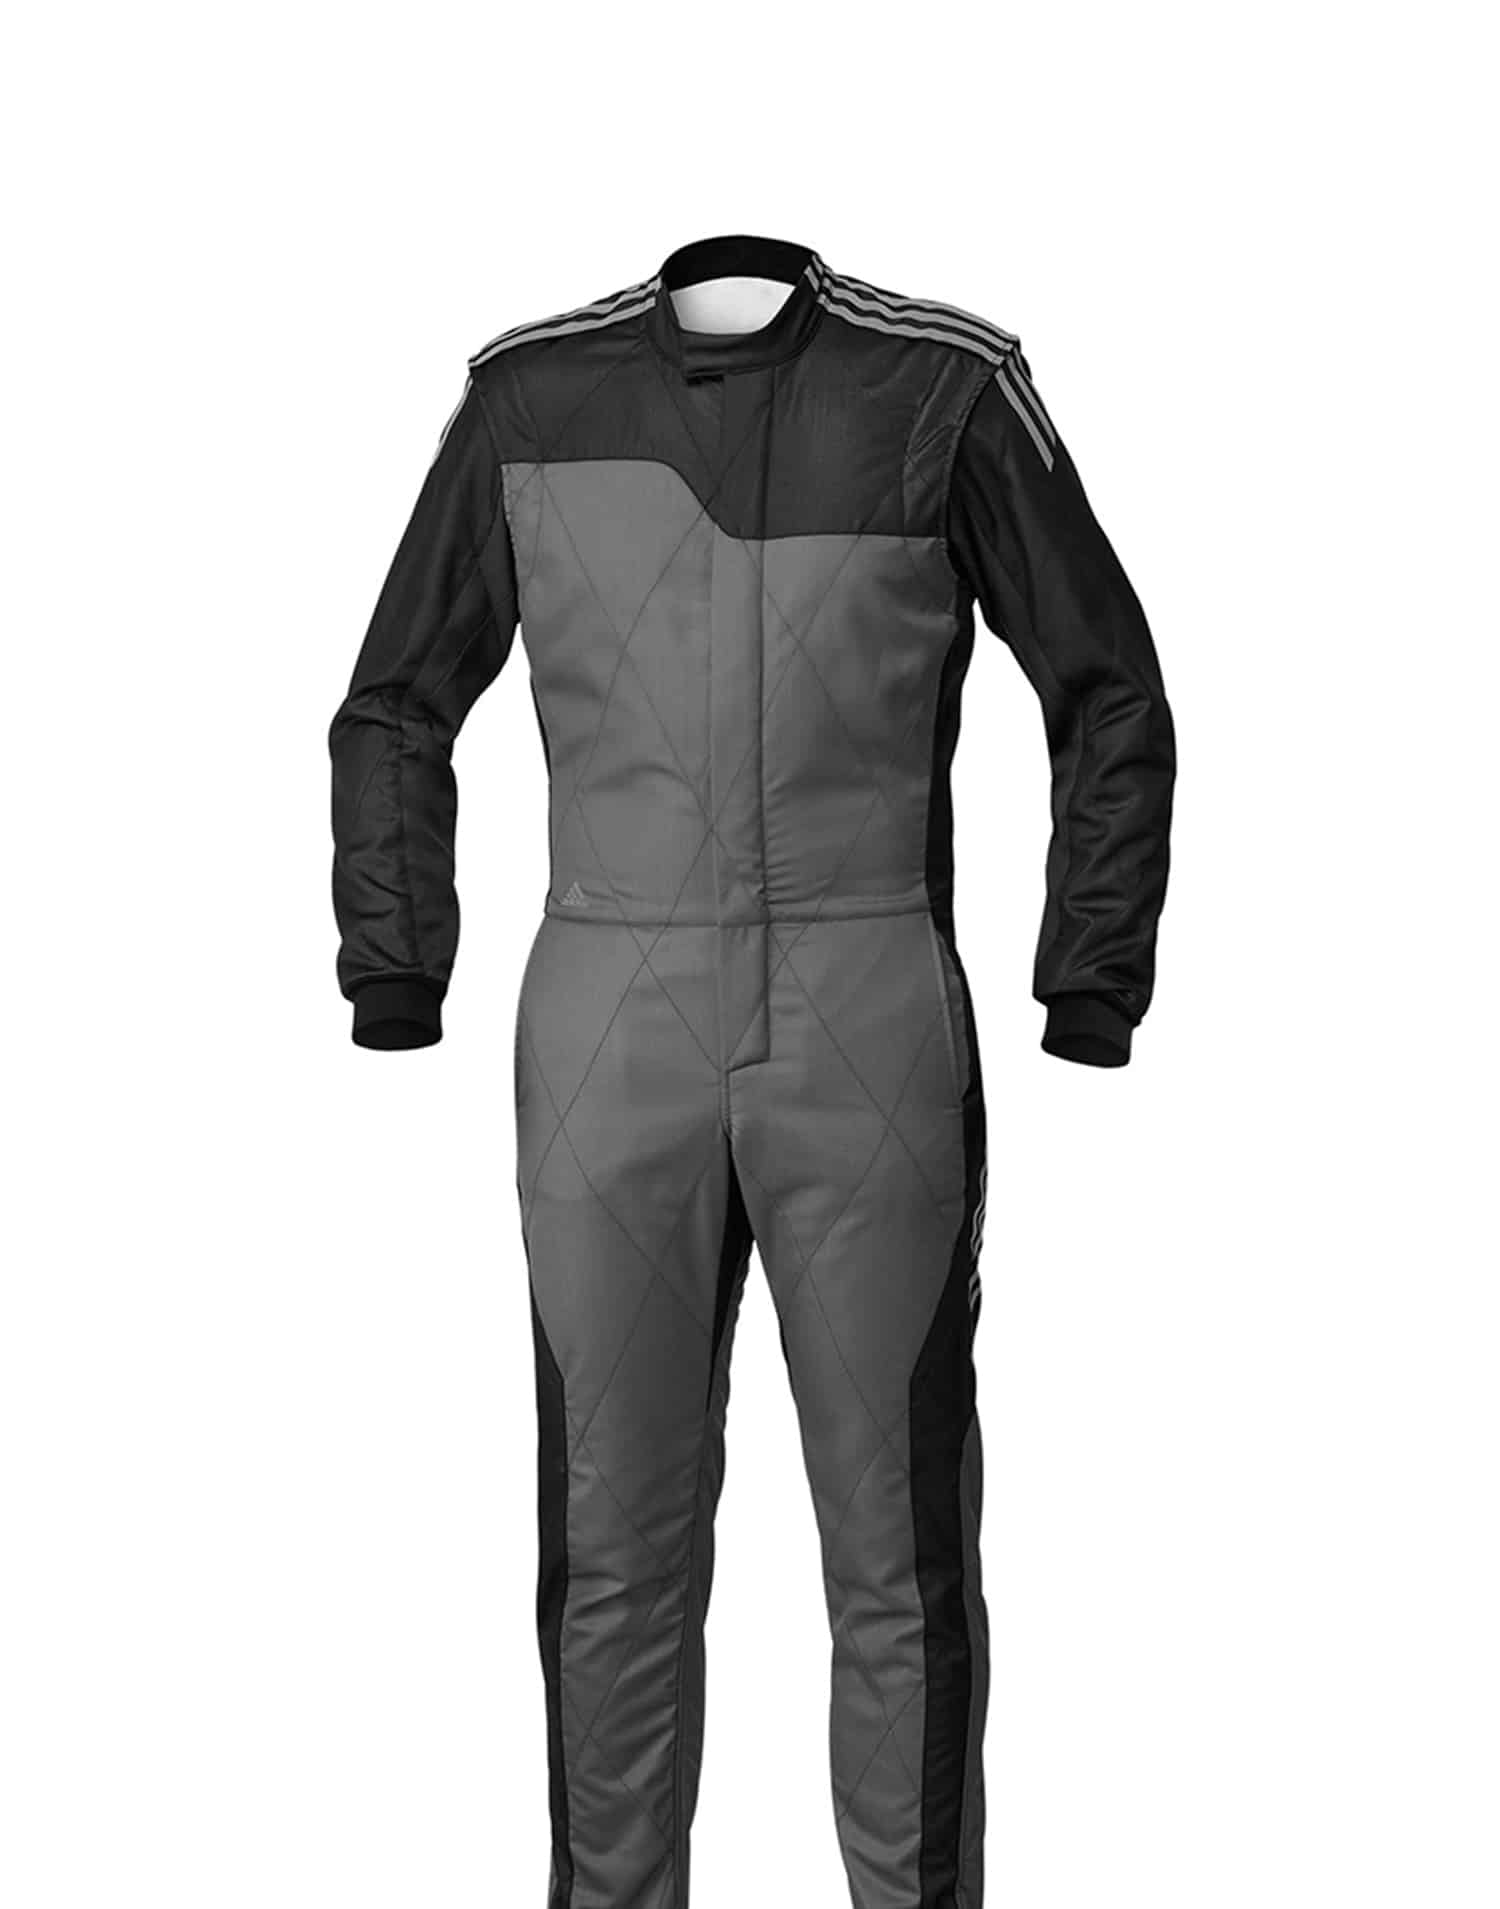 e12825f4e314 Home   Circuit Racing   Race Suits